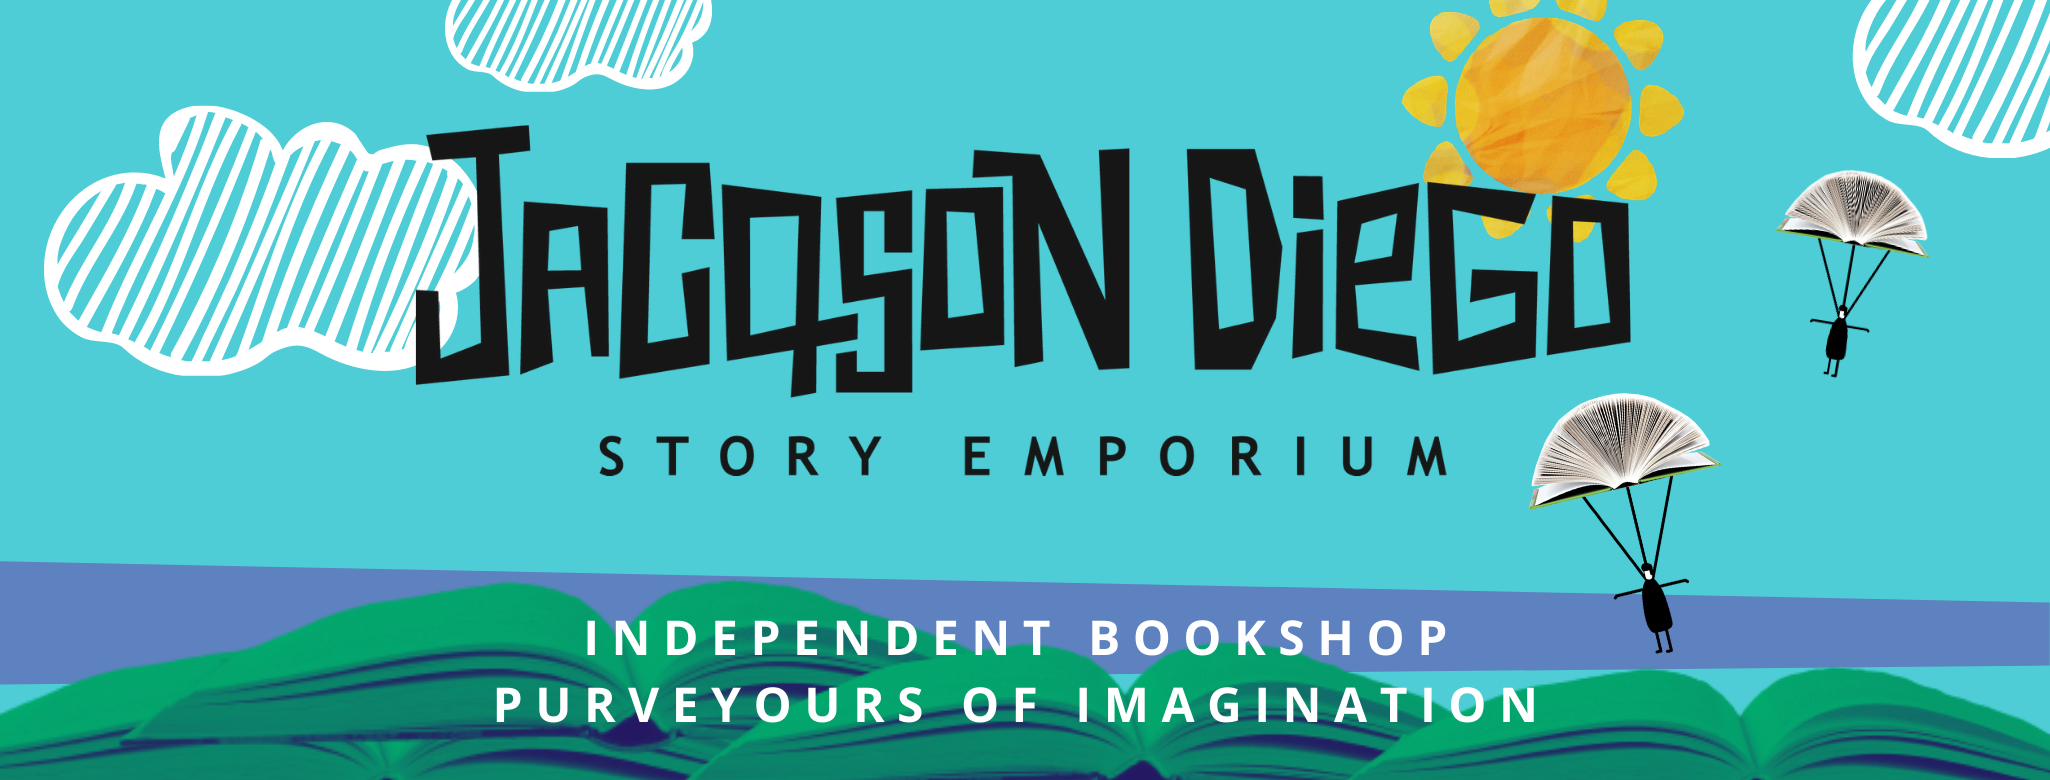 Jacqson Diego Story Emporium Limited